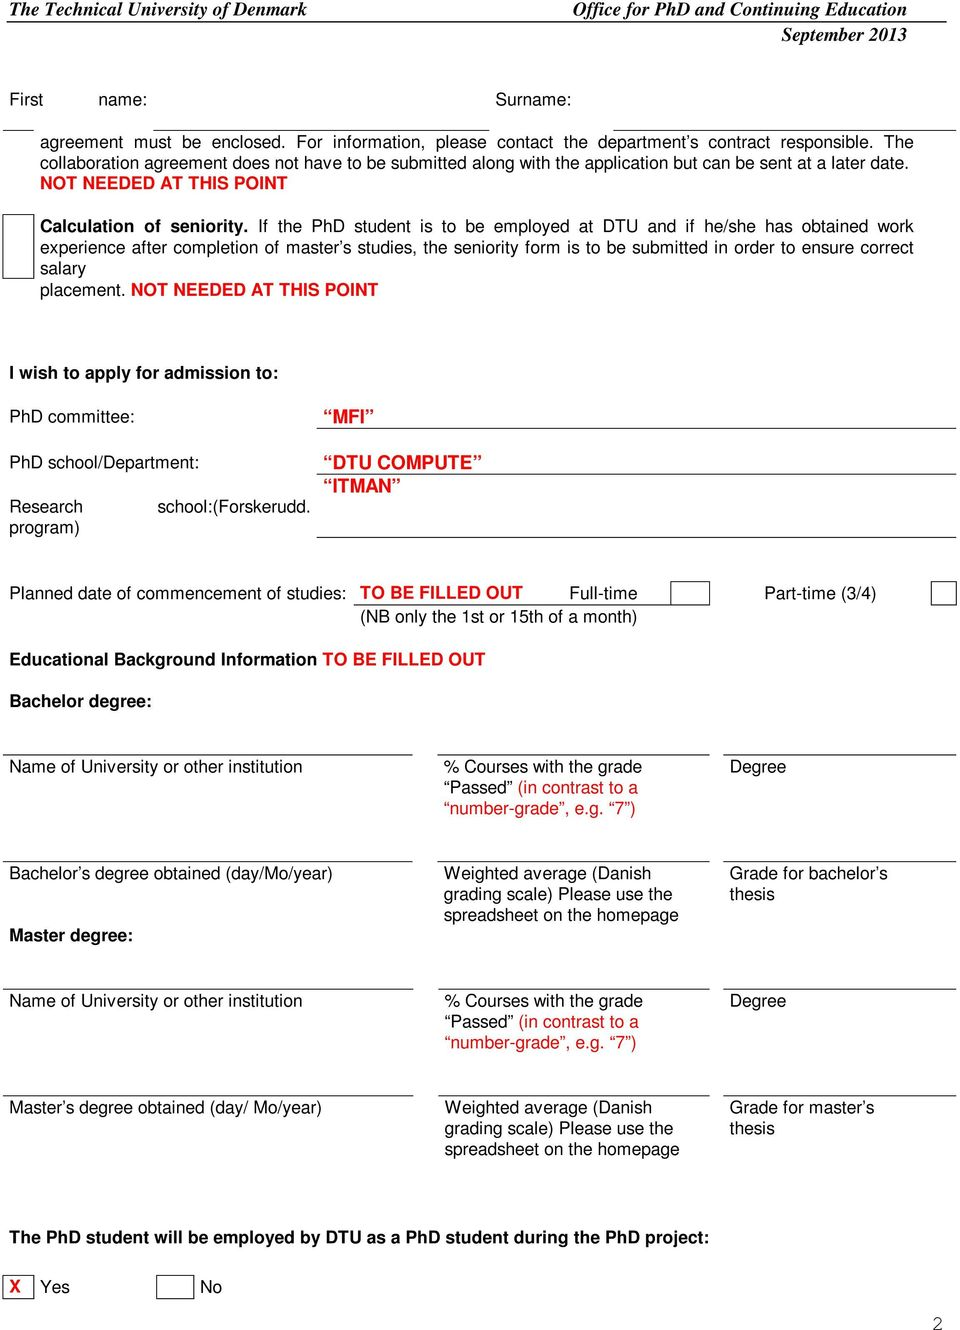 If the PhD student is to be employed at DTU and if he/she has obtained work experience after completion of master s studies, the seniority form is to be submitted in order to ensure correct salary